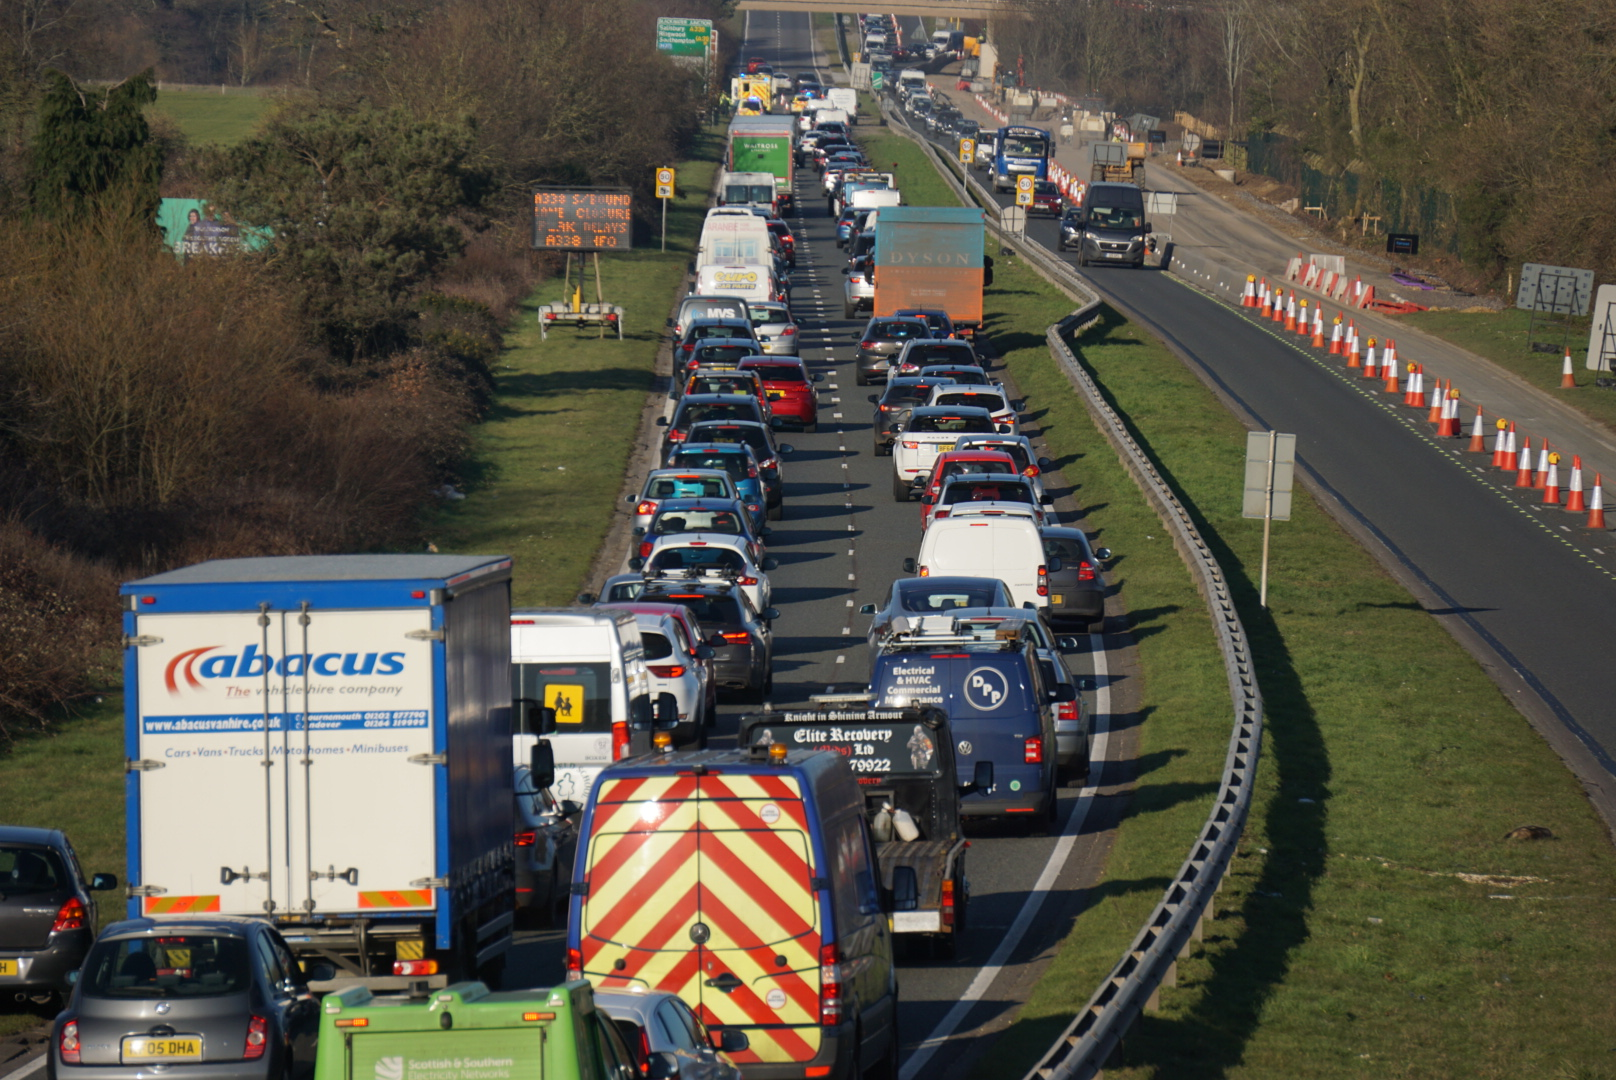 Traffic on the A338